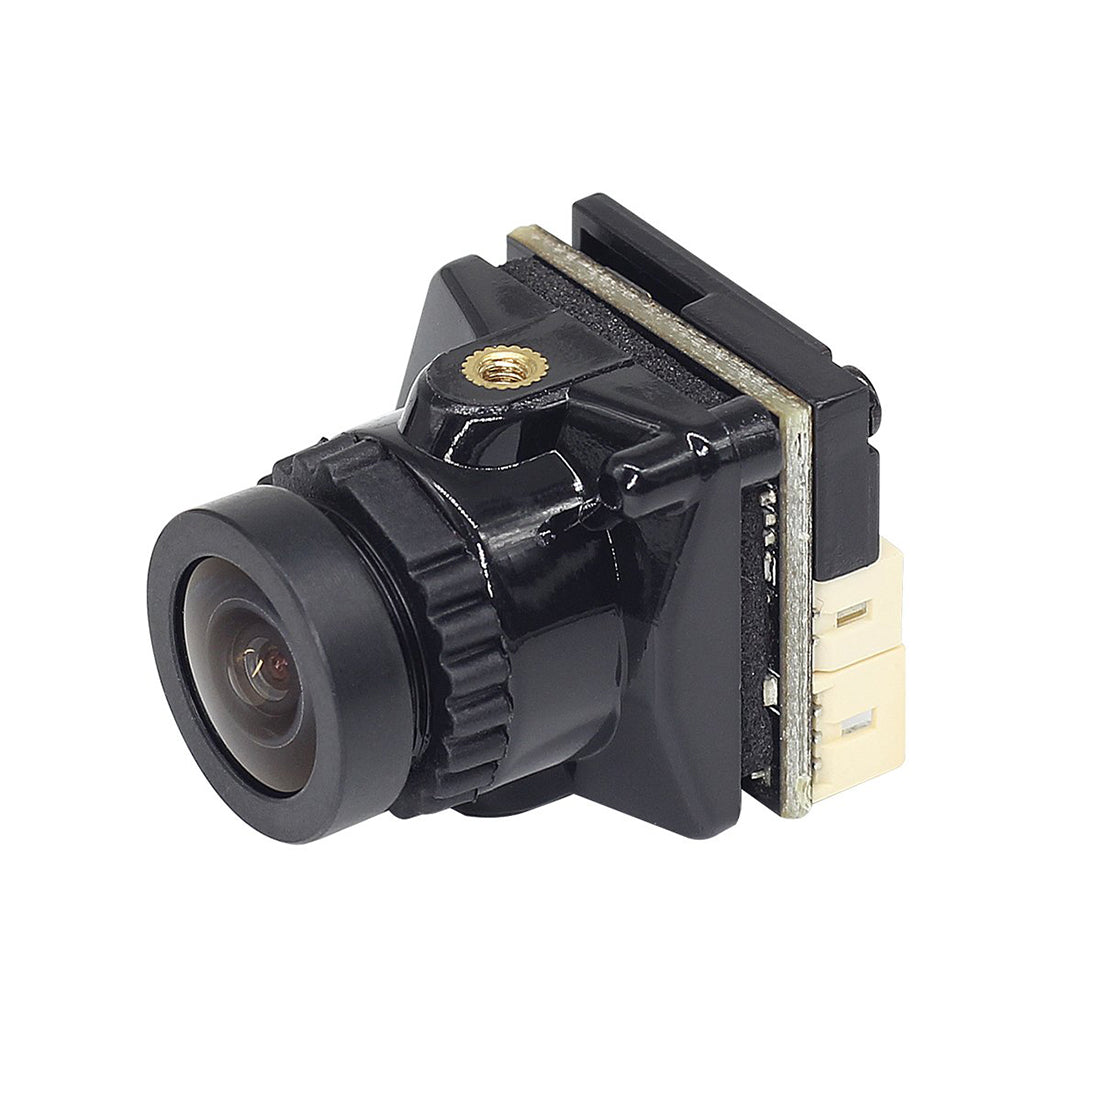 HGLRC Aurora V2 FPV Camera 1200TVL CMOS PAL/NTSC Switchable 2.1mm Lens Support 5-30V Input For FPV Racing Drone Quadcopter